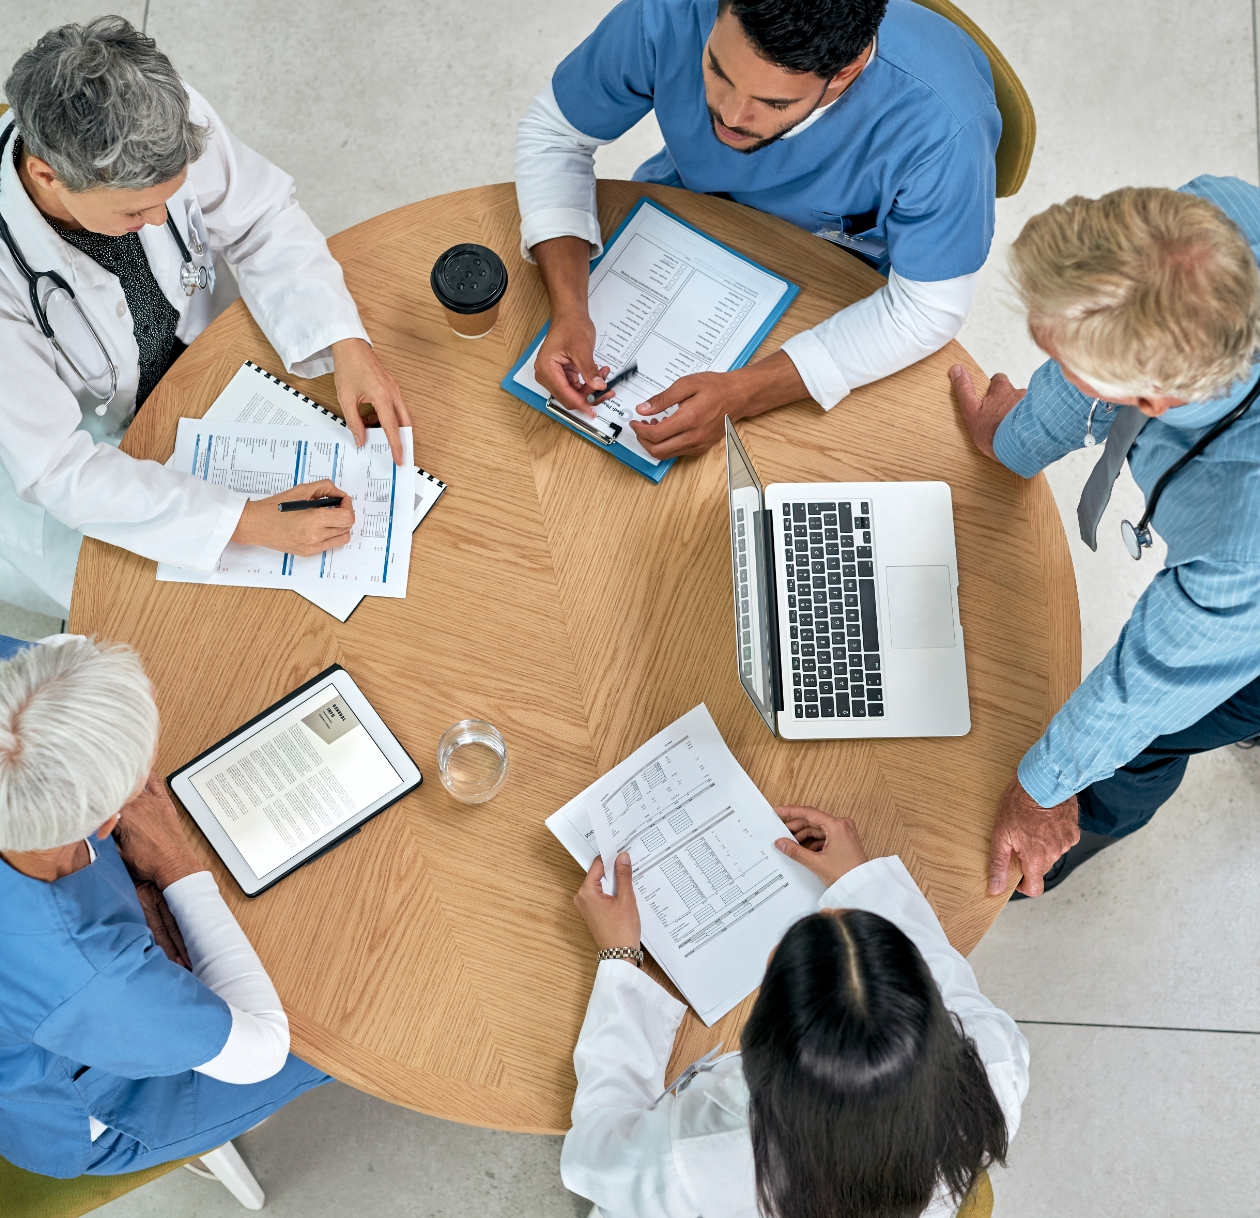 Meaningful Use Stage 2: Engaging and Empowering the Consumer of Care